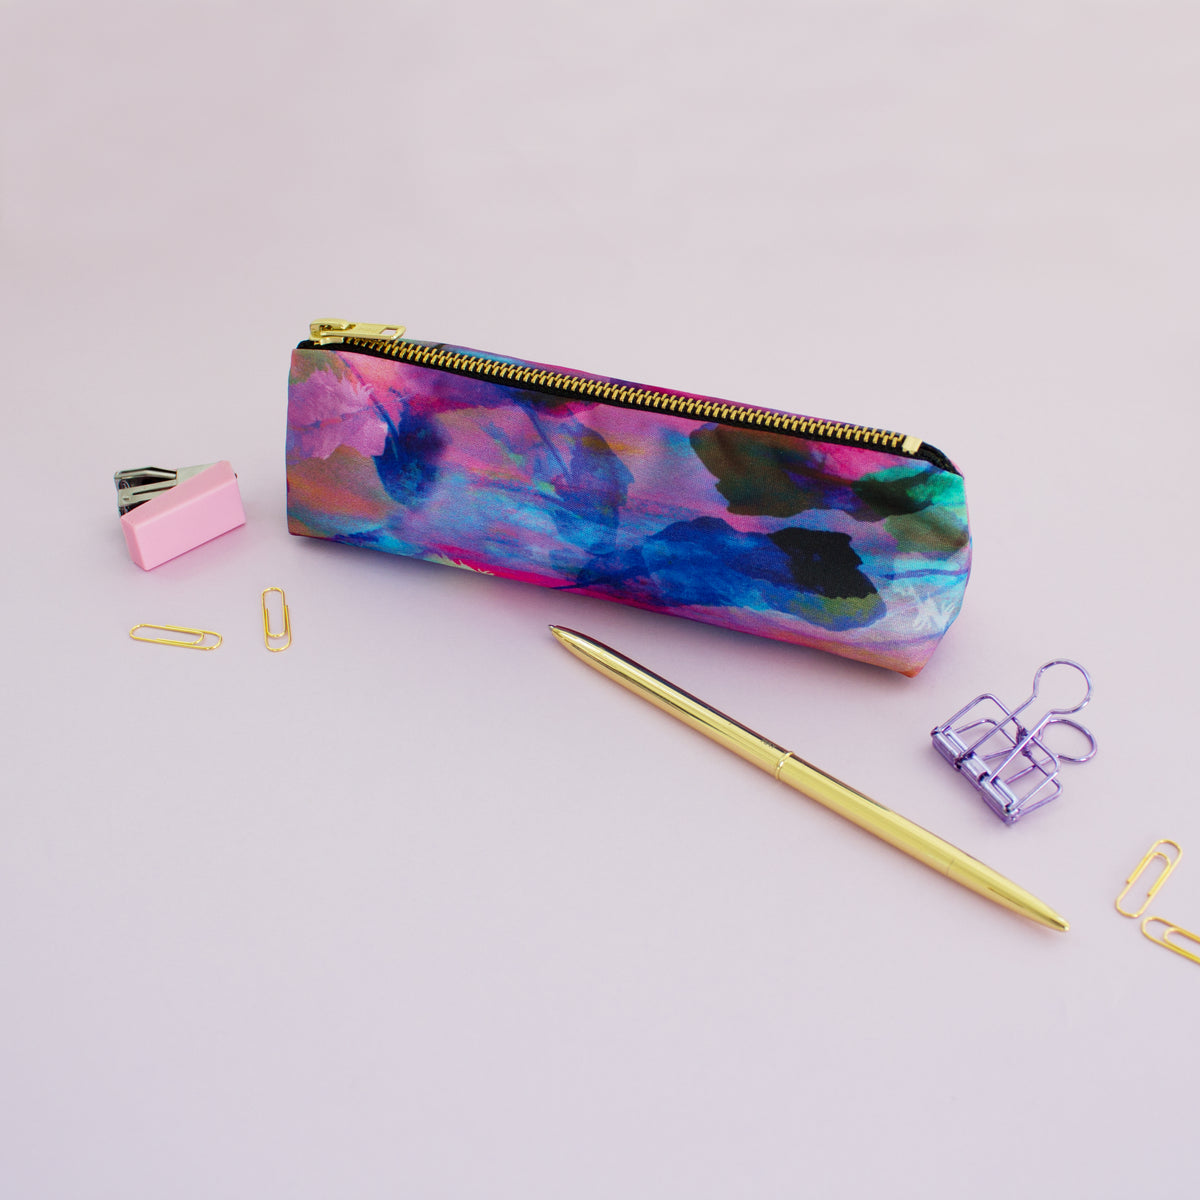 Pink freedom feathers pencil case